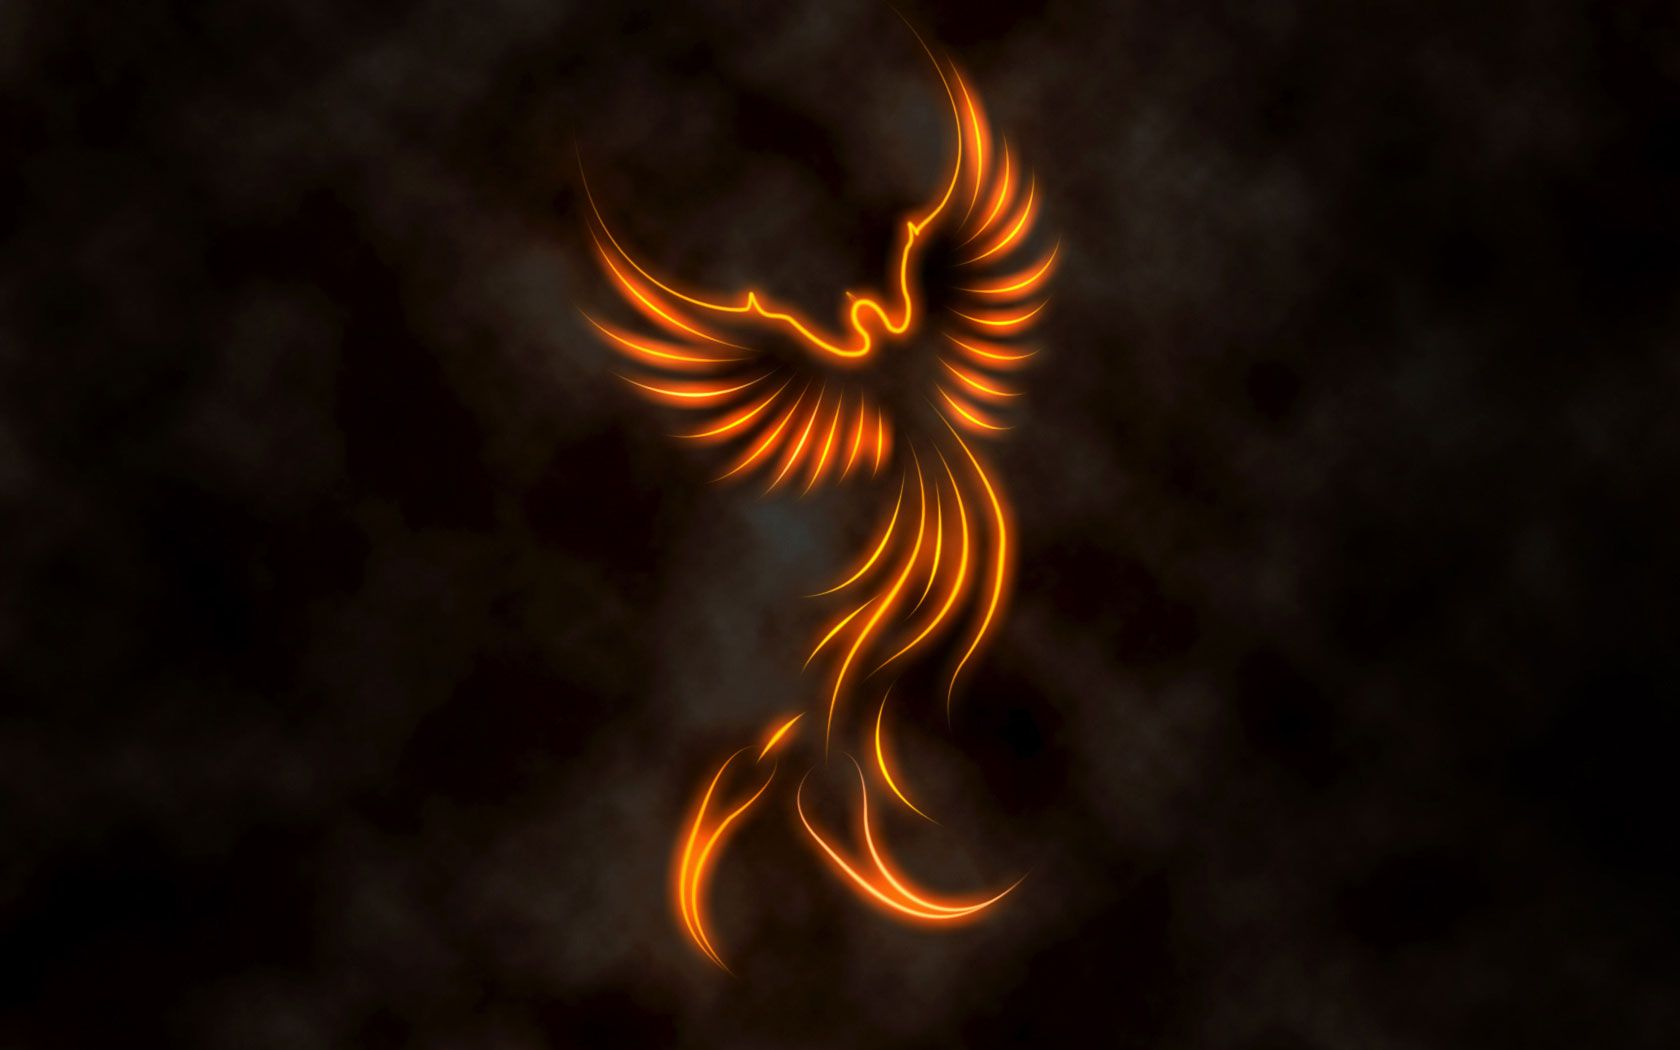 Fire Phoenix Wallpapers Top Free Fire Phoenix Backgrounds Wallpaperaccess